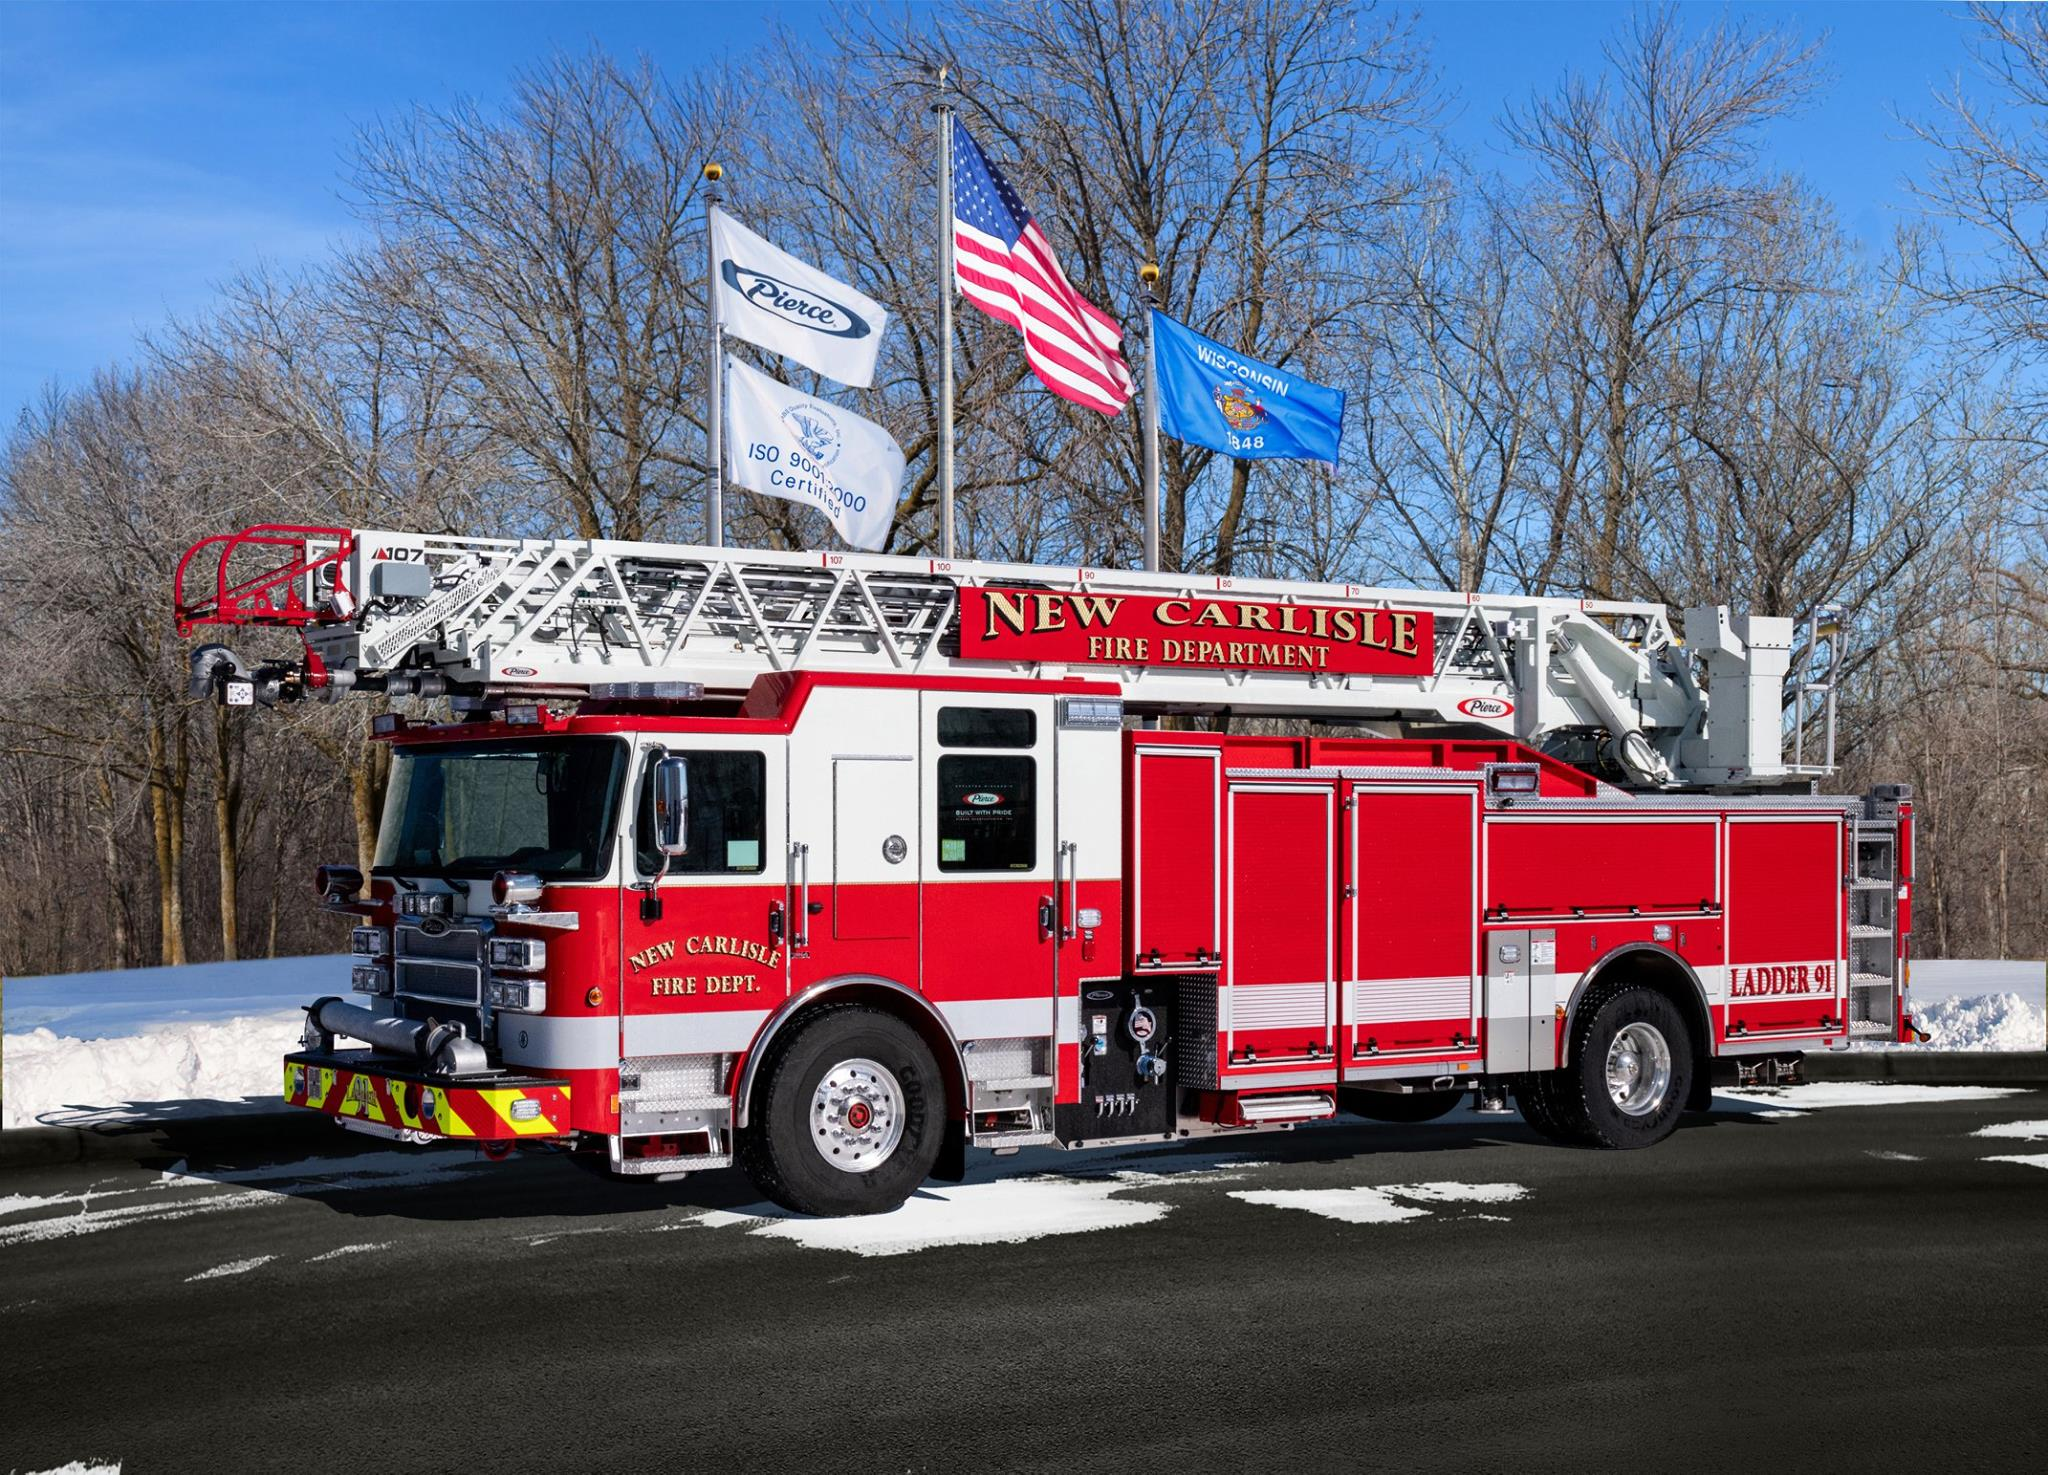 New Carlisle new fire engine